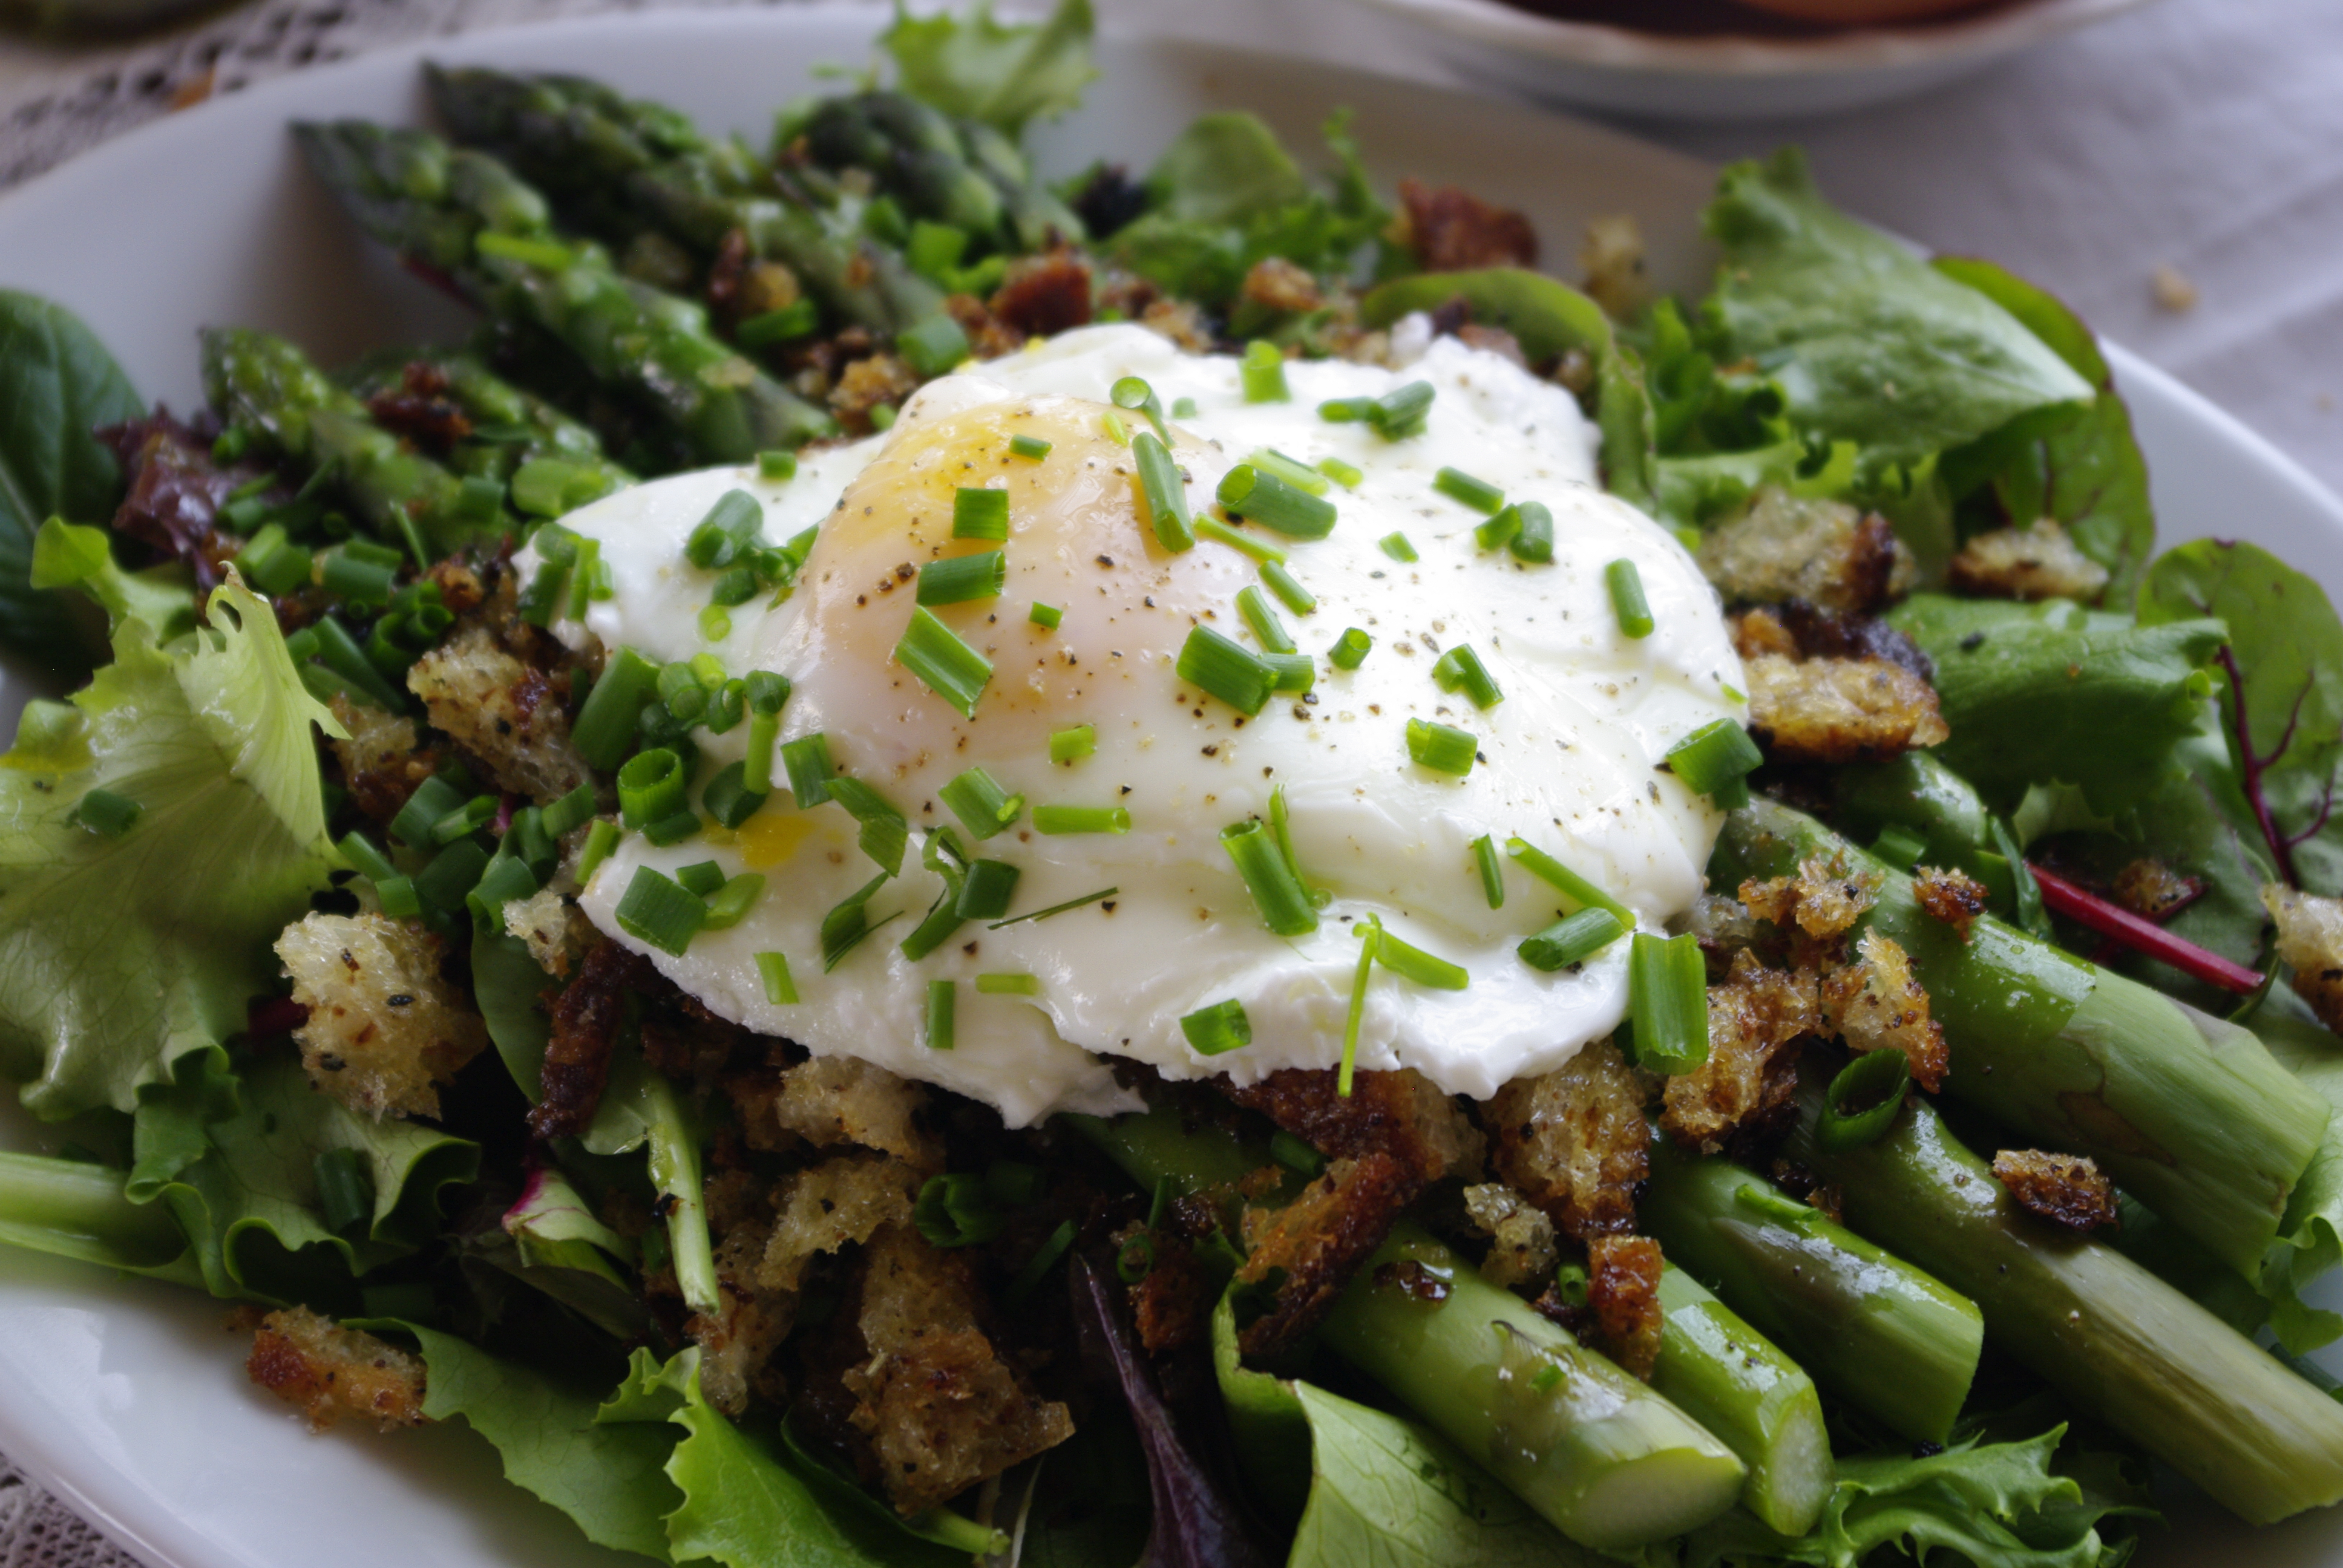 Asparagus with Poached Egg Salad | Tea Time at the Old Hotel